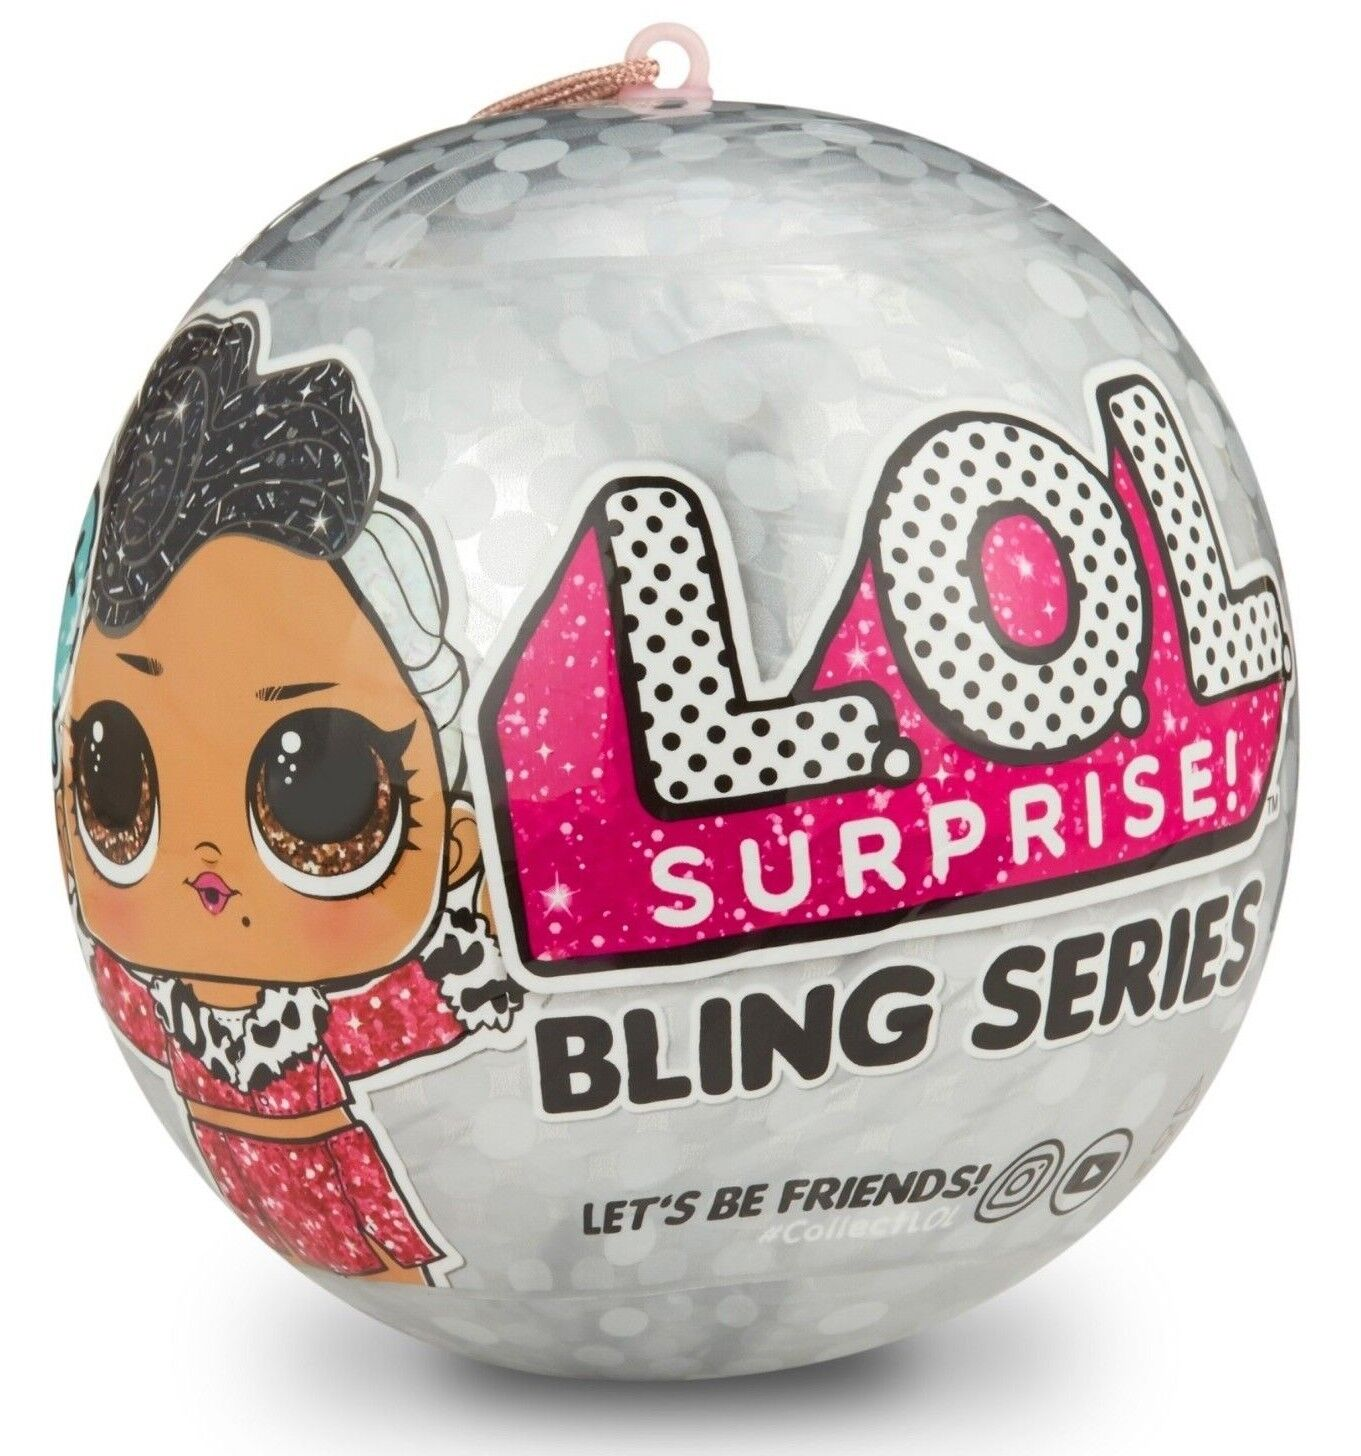 NEW 2018 LOL Surprise Bling Series - GUARANTEED GOLD BALL! - SHIPS TODAY!